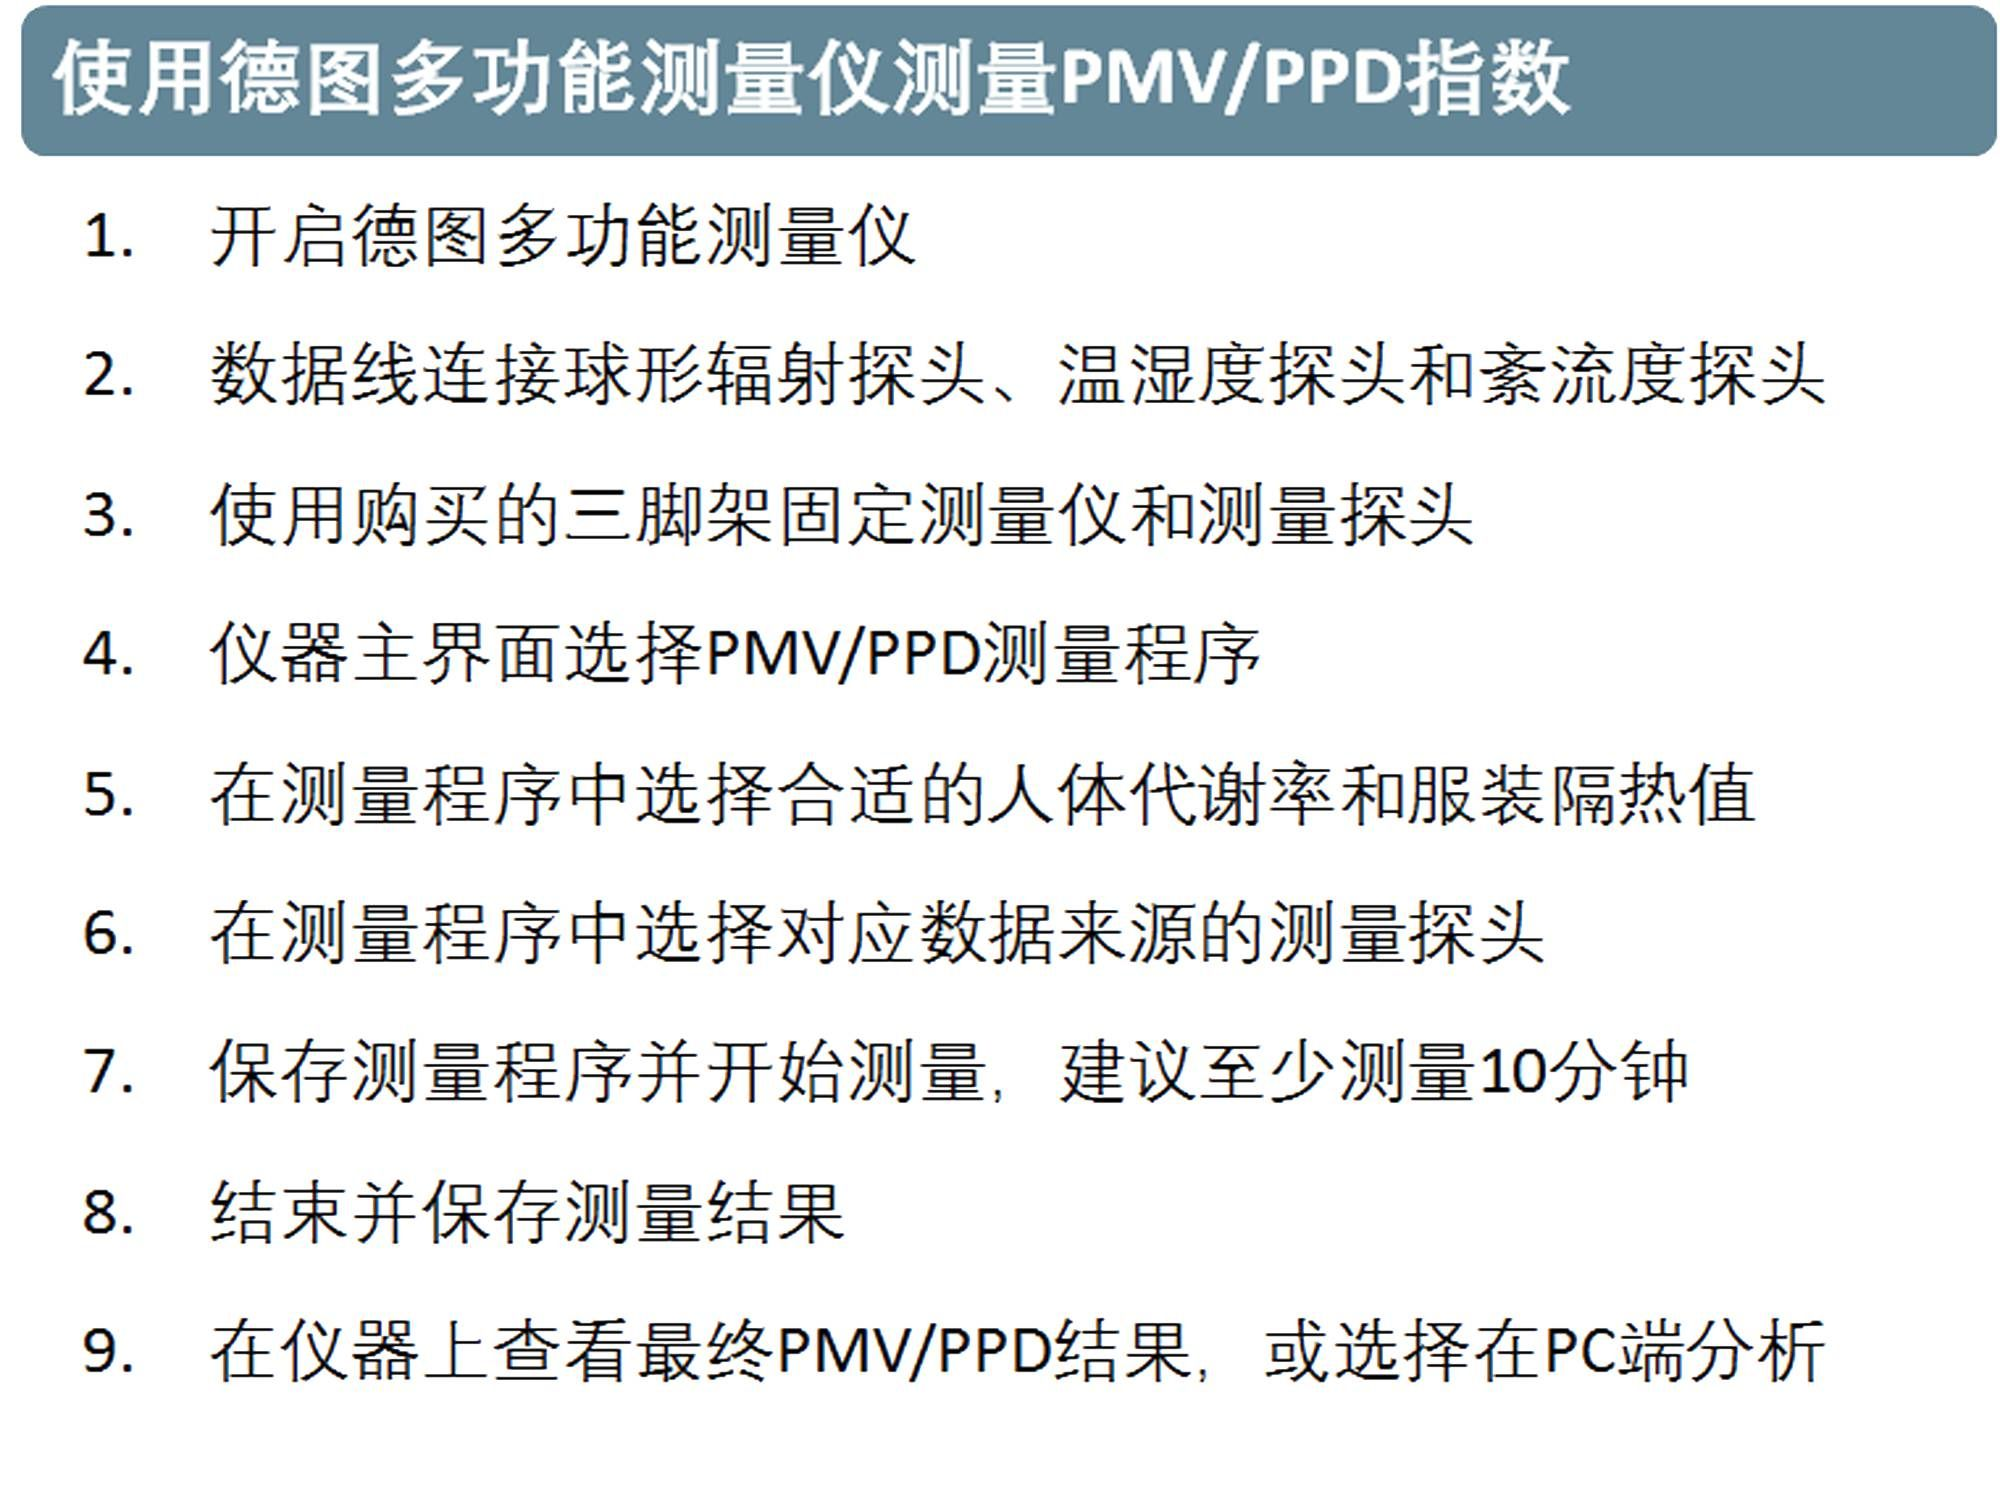 cn_applications_hvacr_indoor_air_and_comfort_PMV_PPD-03.png